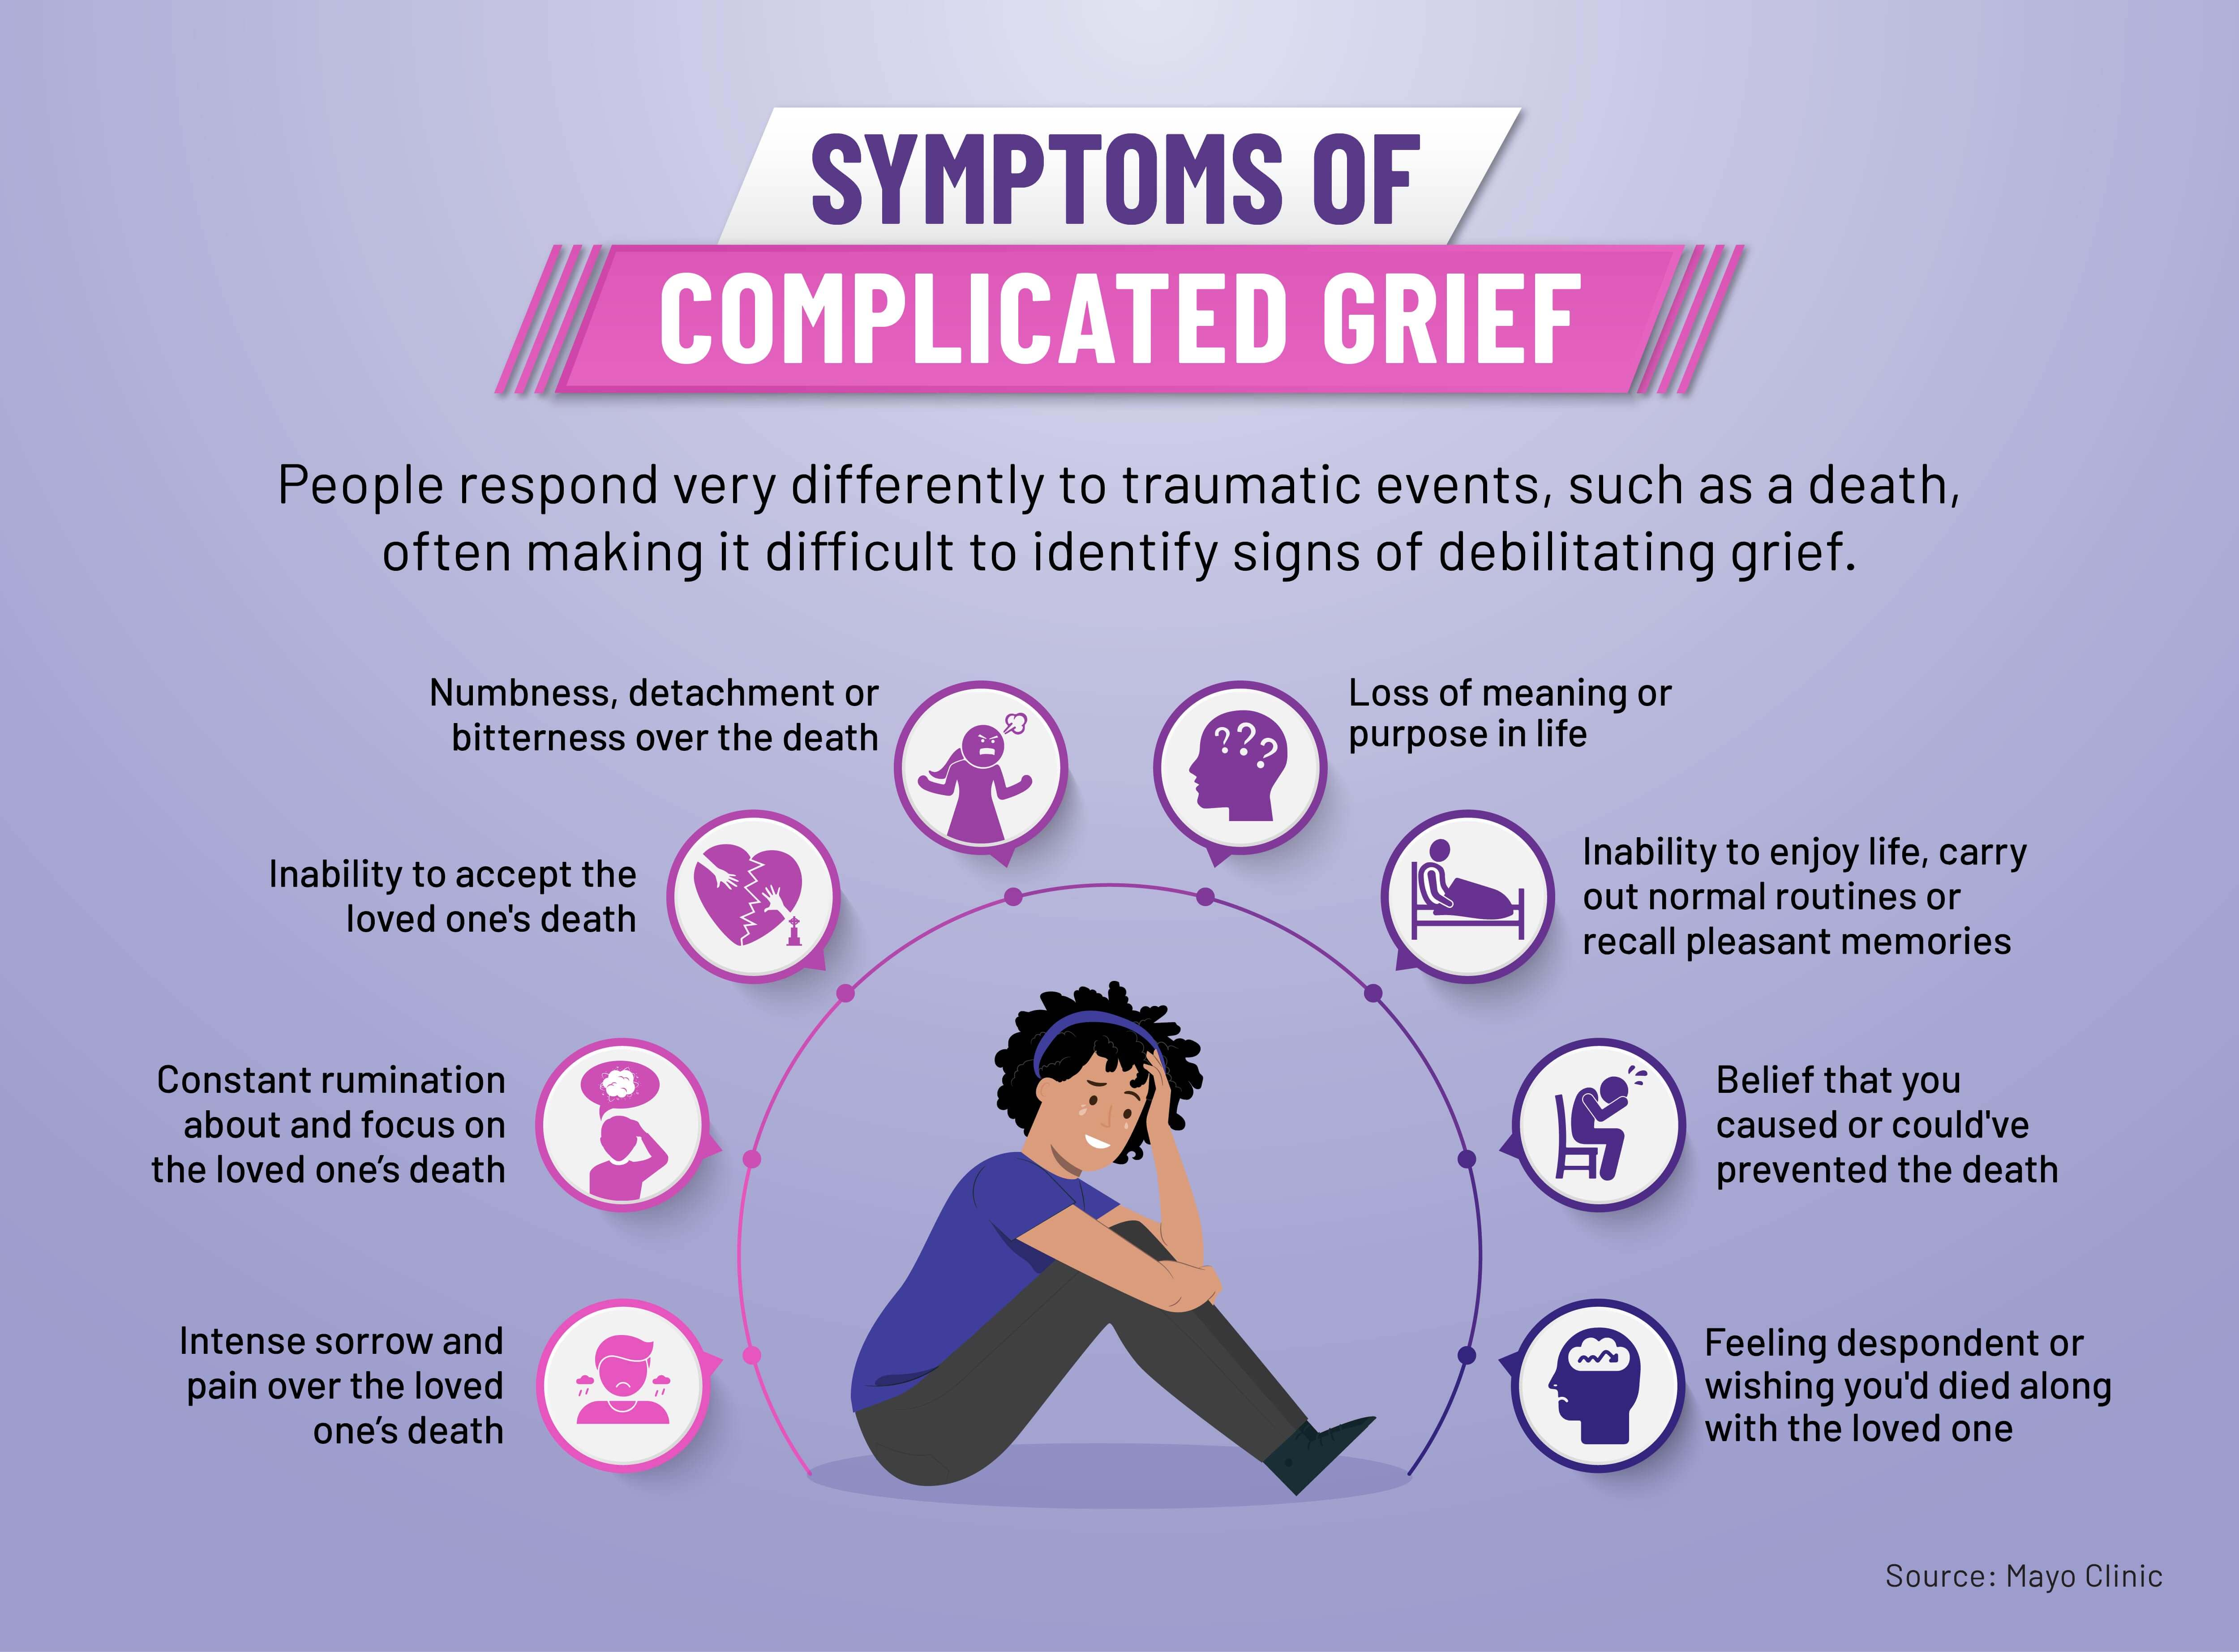 Eight symptoms of complicated grief.